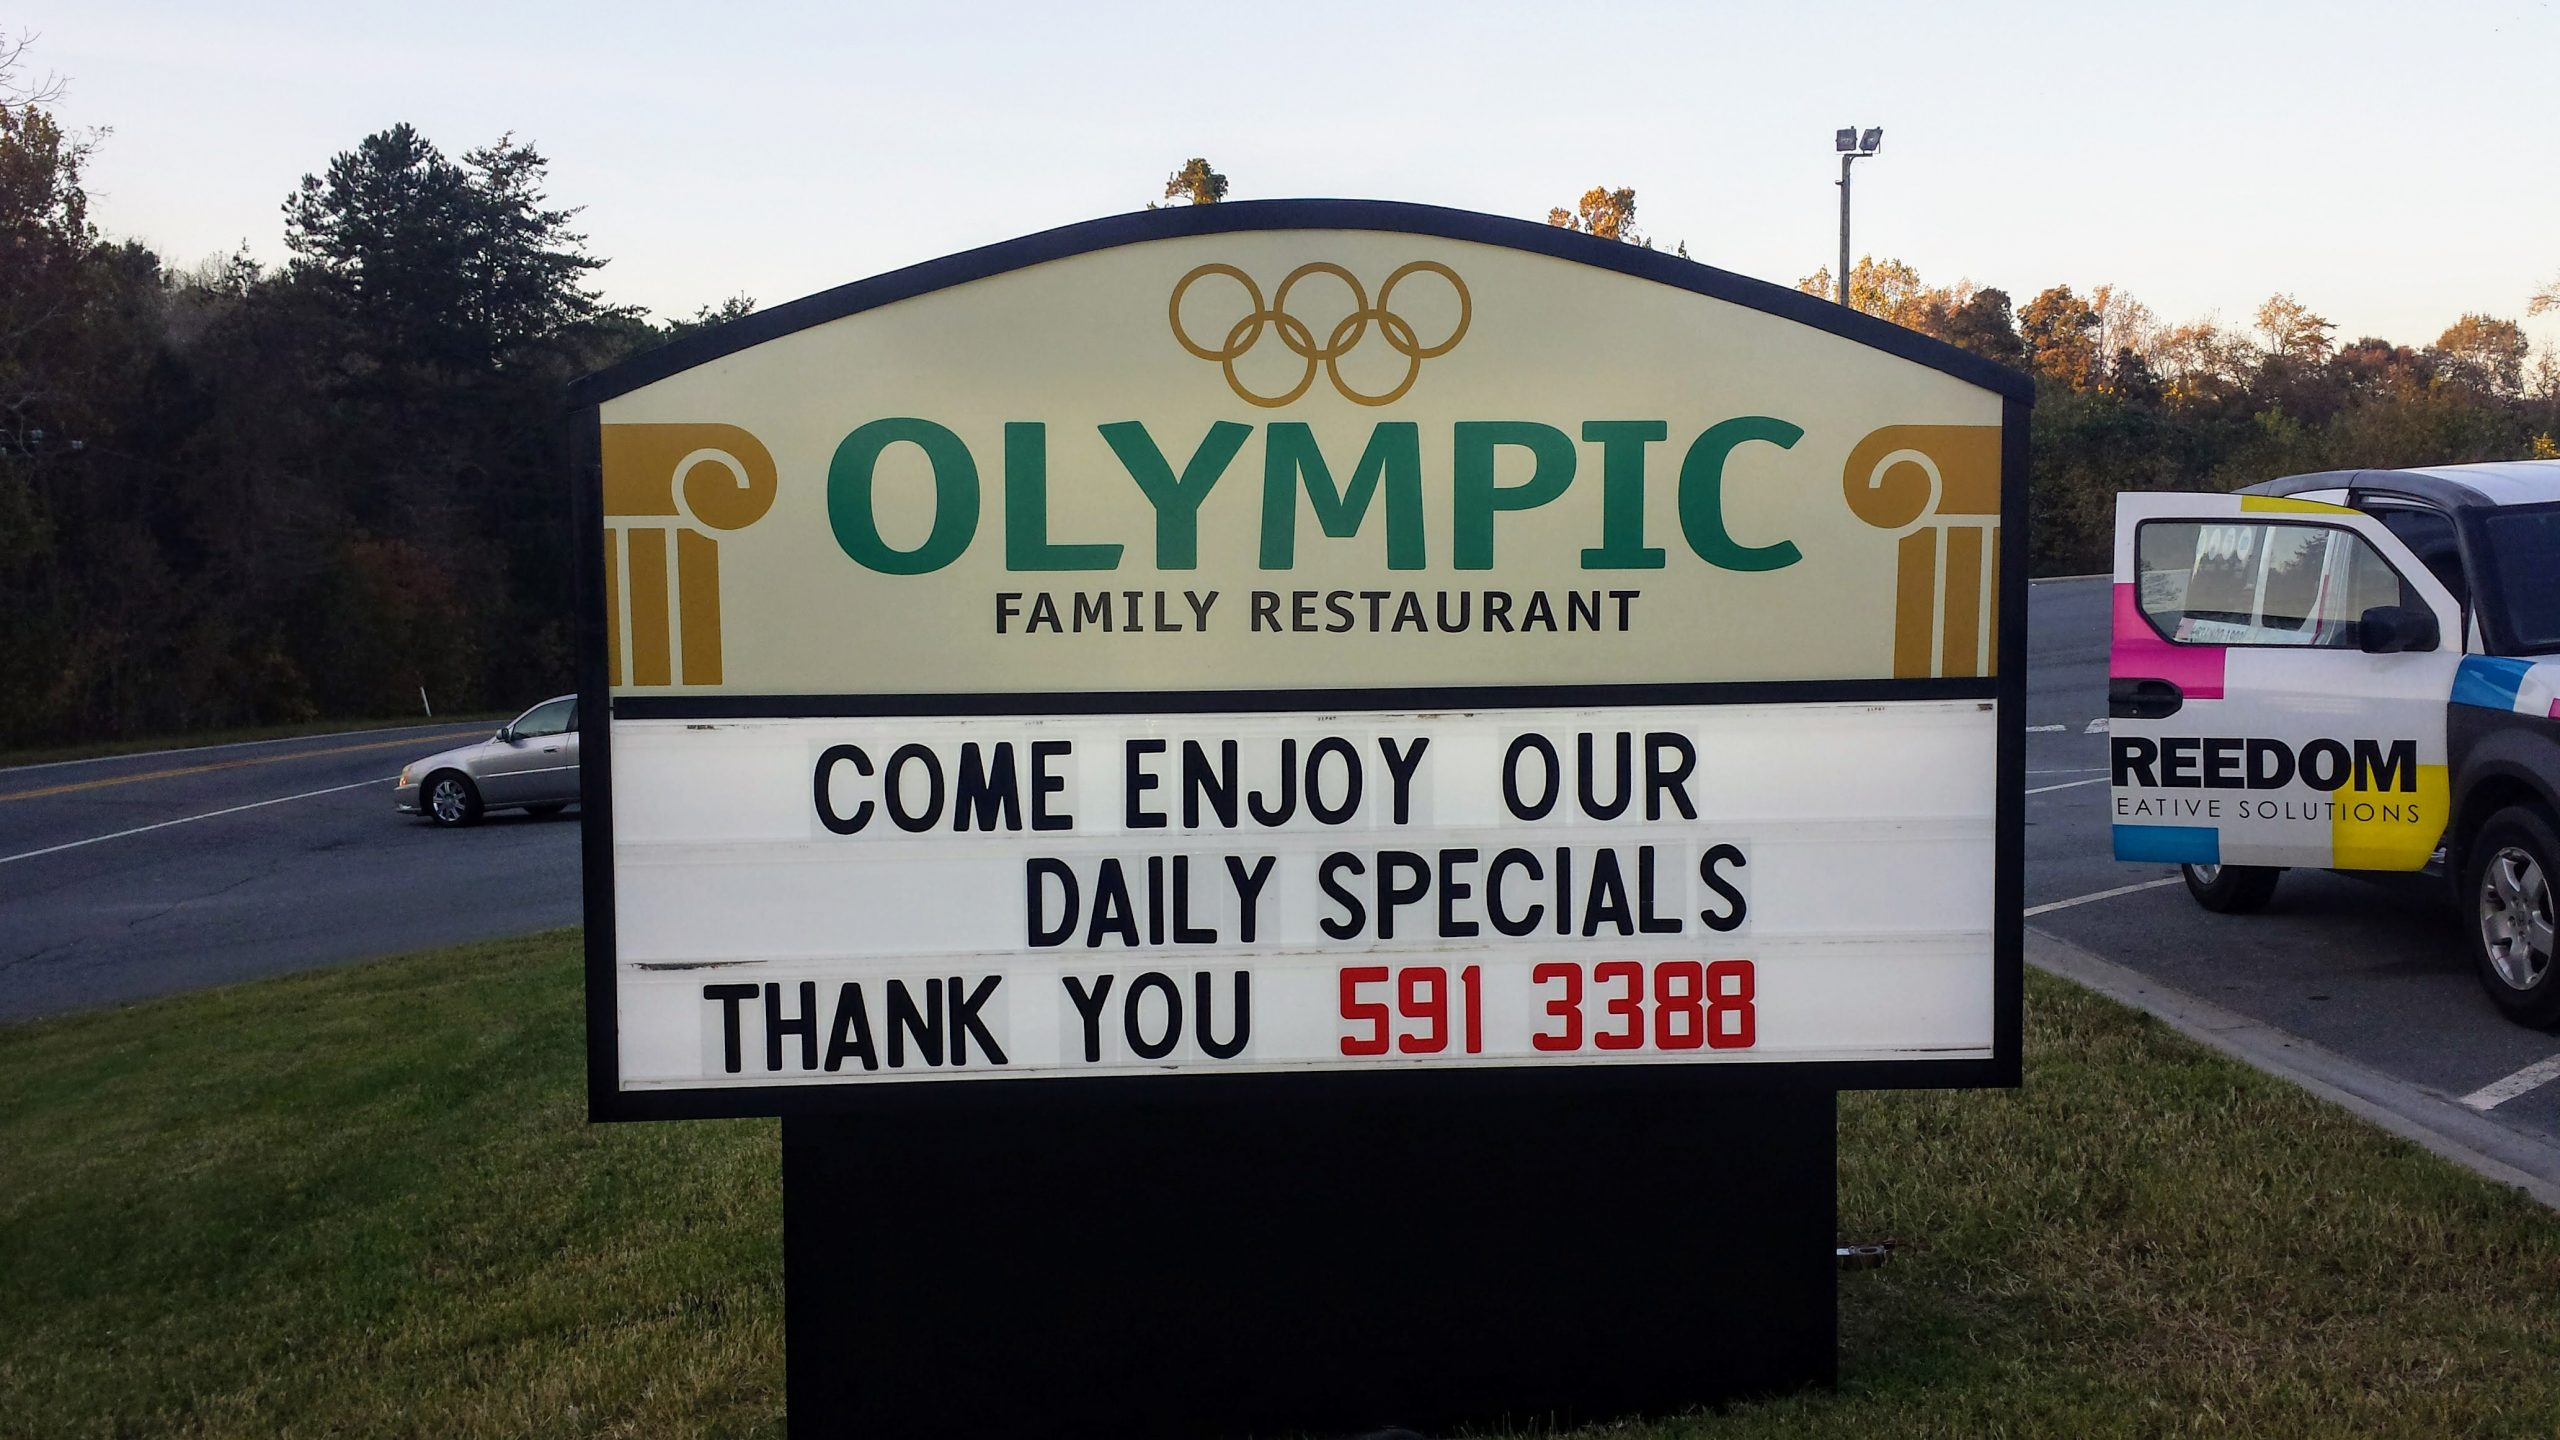 Olympic_restaurant_outdoor_message_board_sign